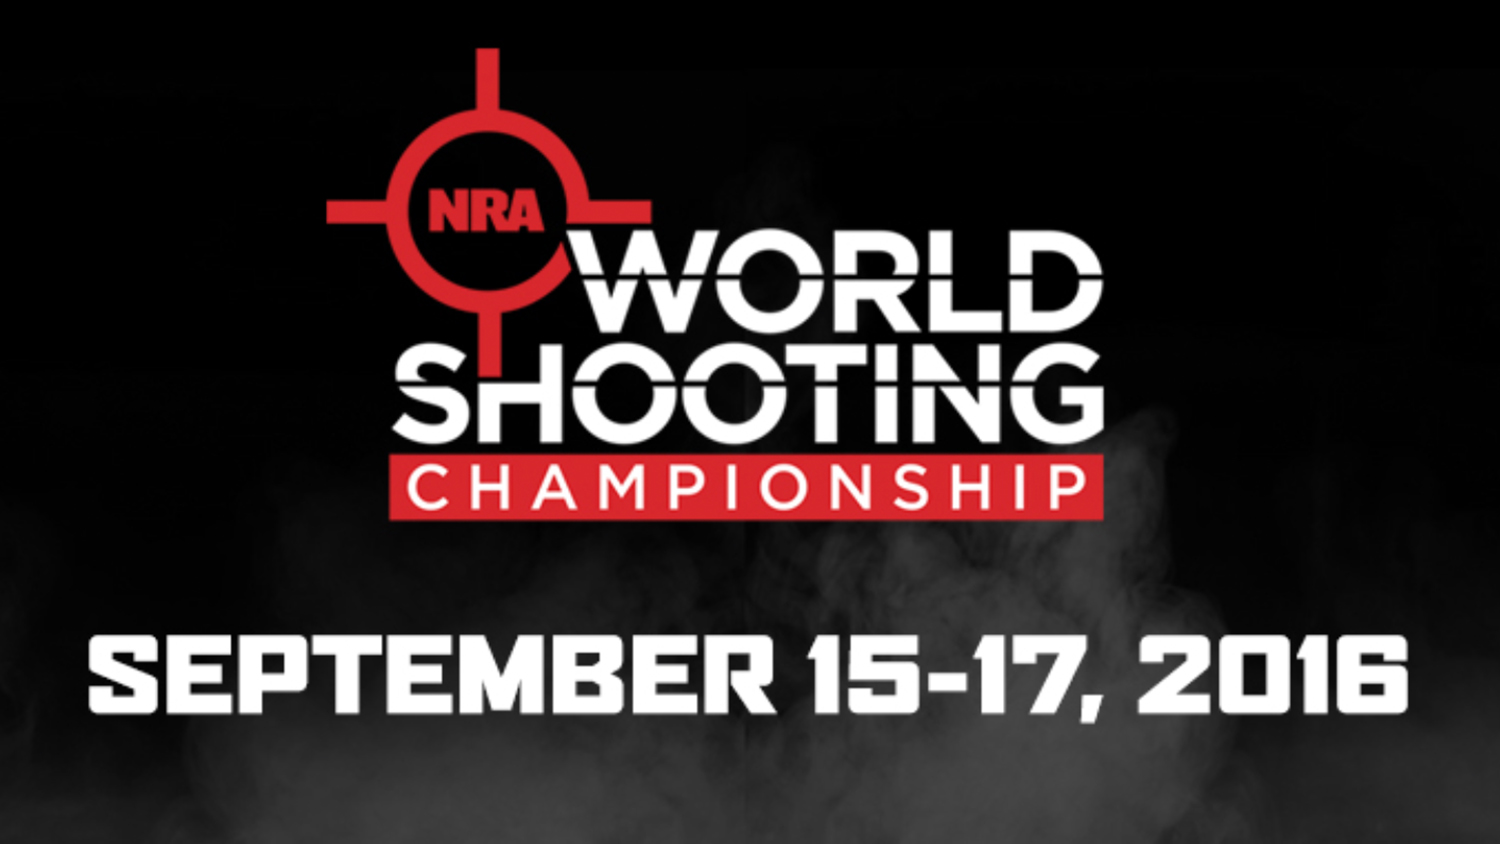 Registration for the 2016 NRA World Shooting Championship is Open!